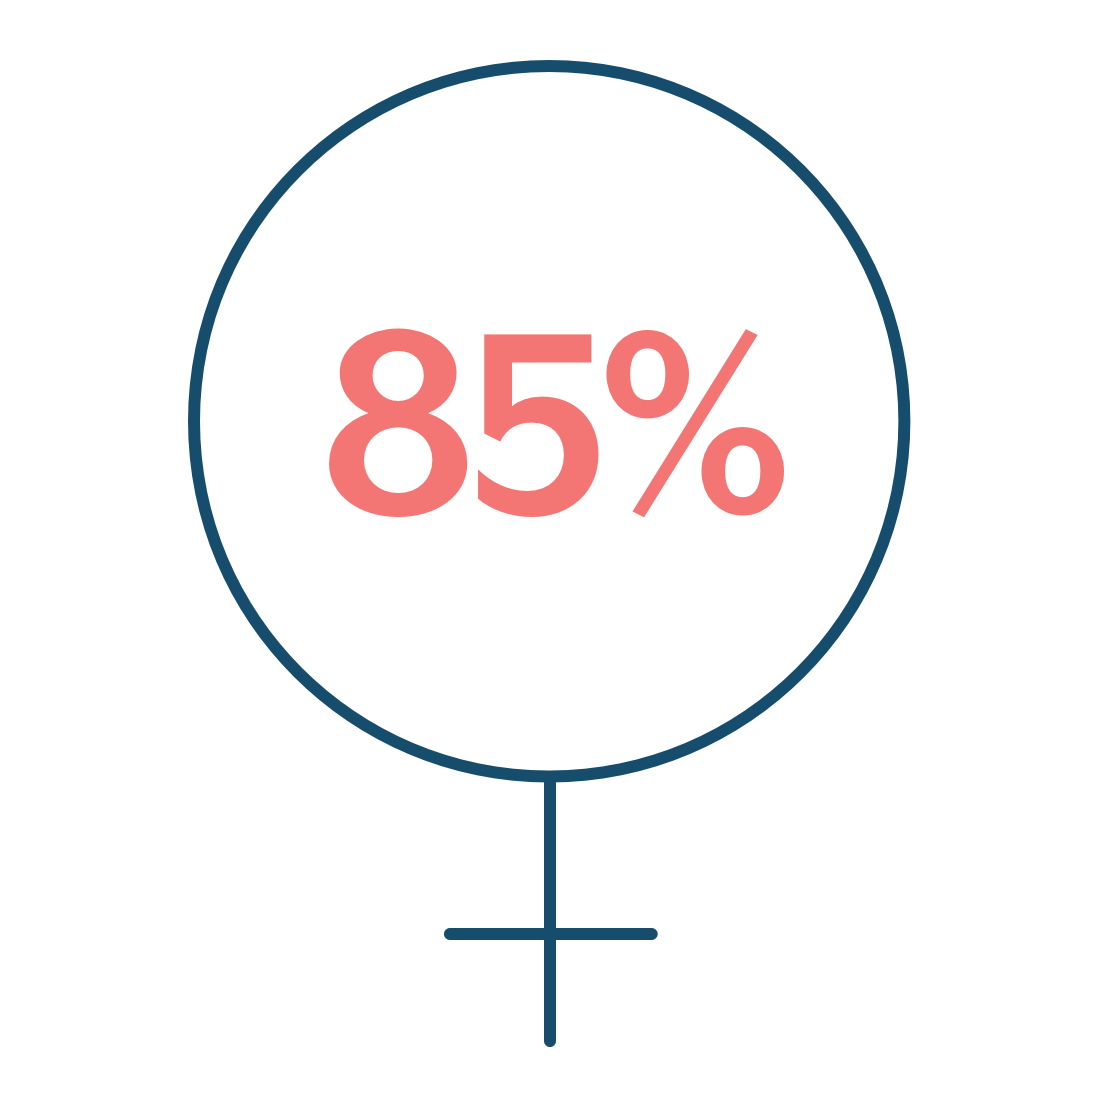 85% of all UTIs are in females